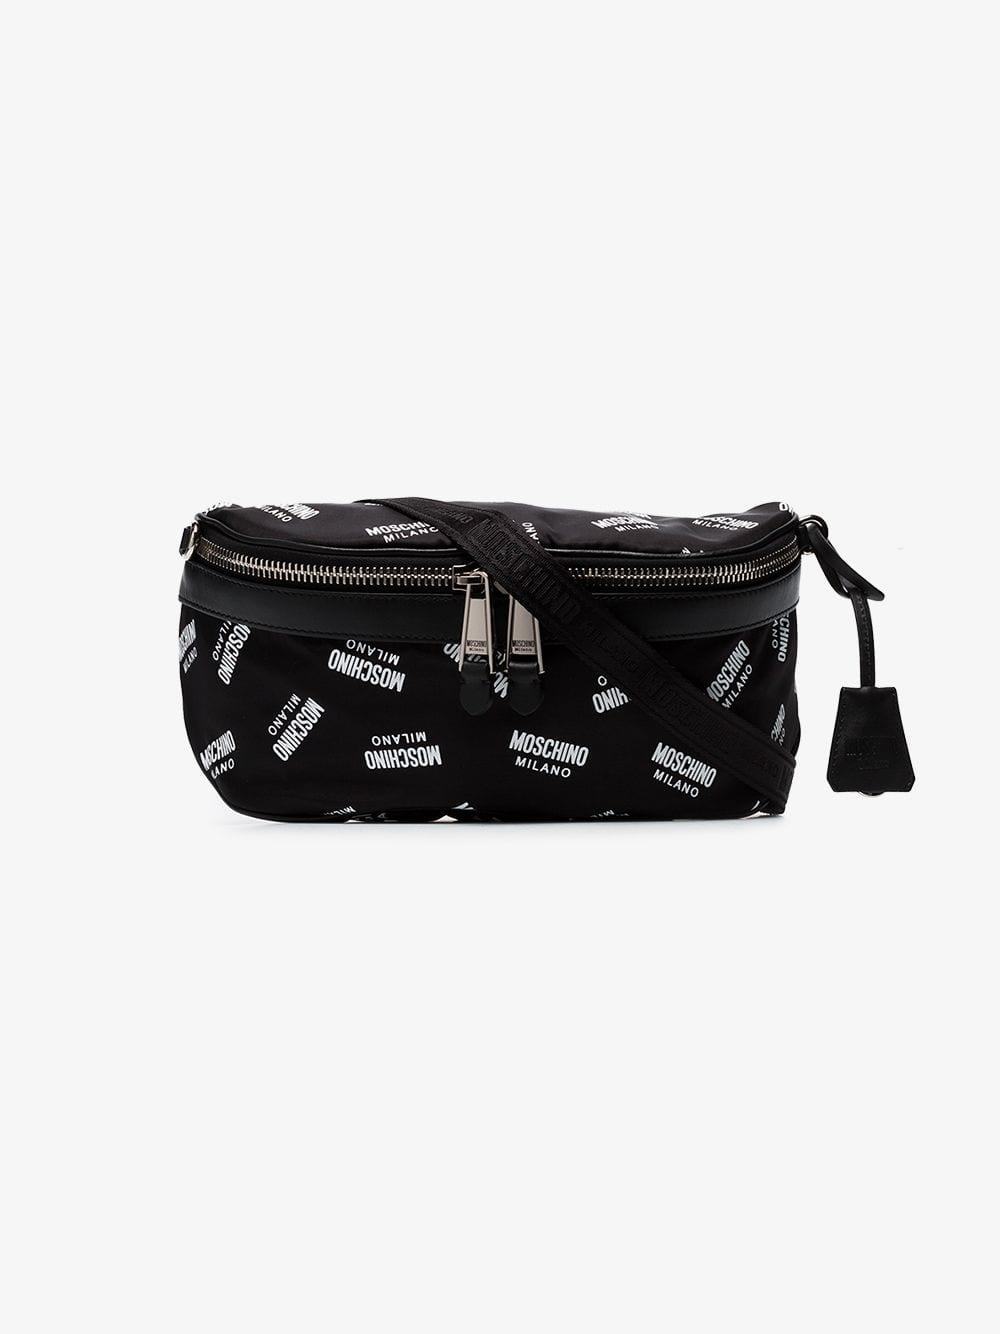 8ec0e1c79f69 Lyst - Moschino Black And White Logo Print Cross Body Bag in Black for Men  - Save 4%